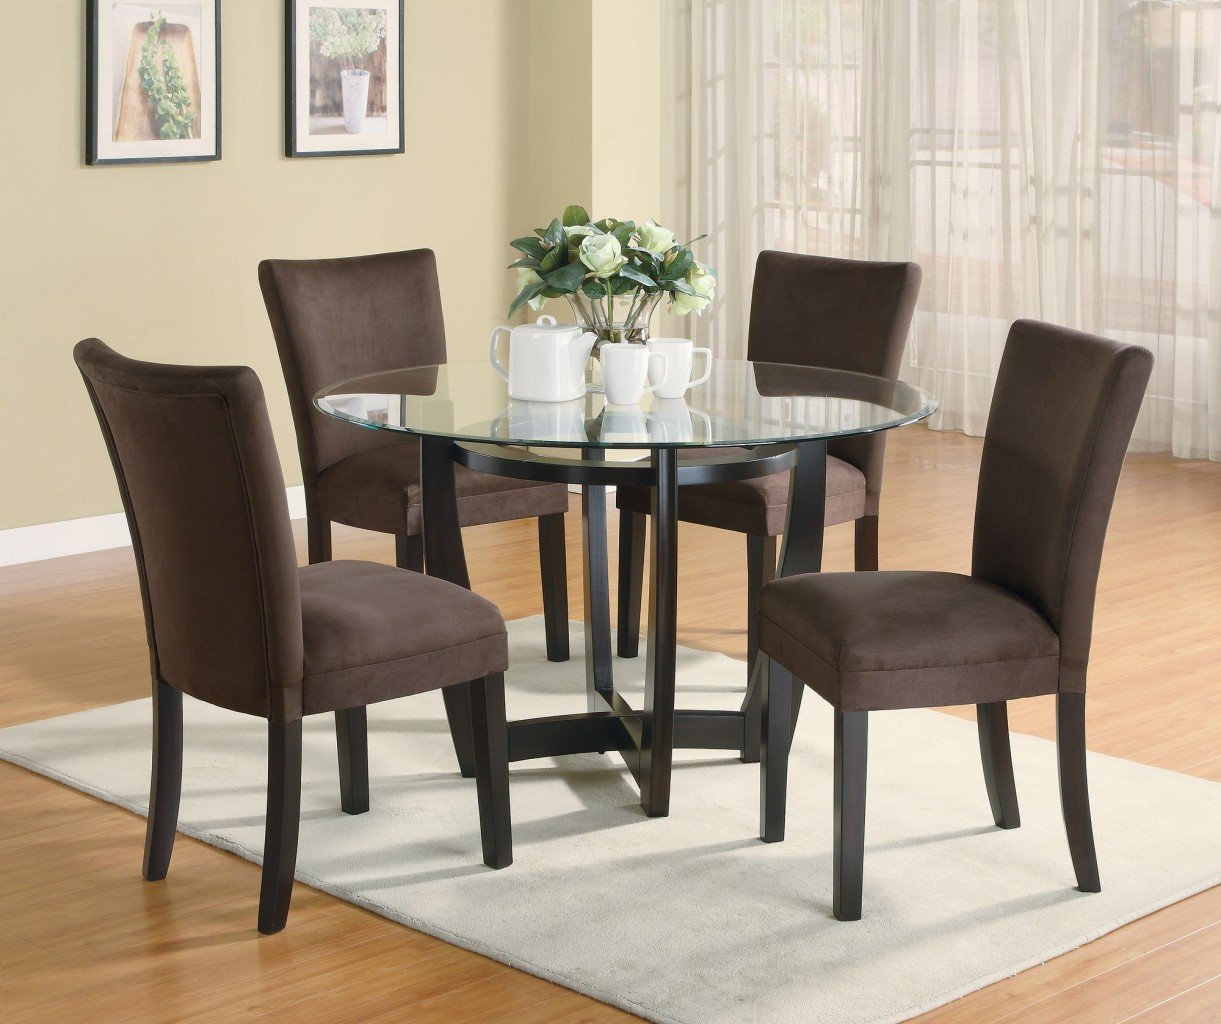 Cheap dining room table sets home furniture design for Modern dining table and chairs set